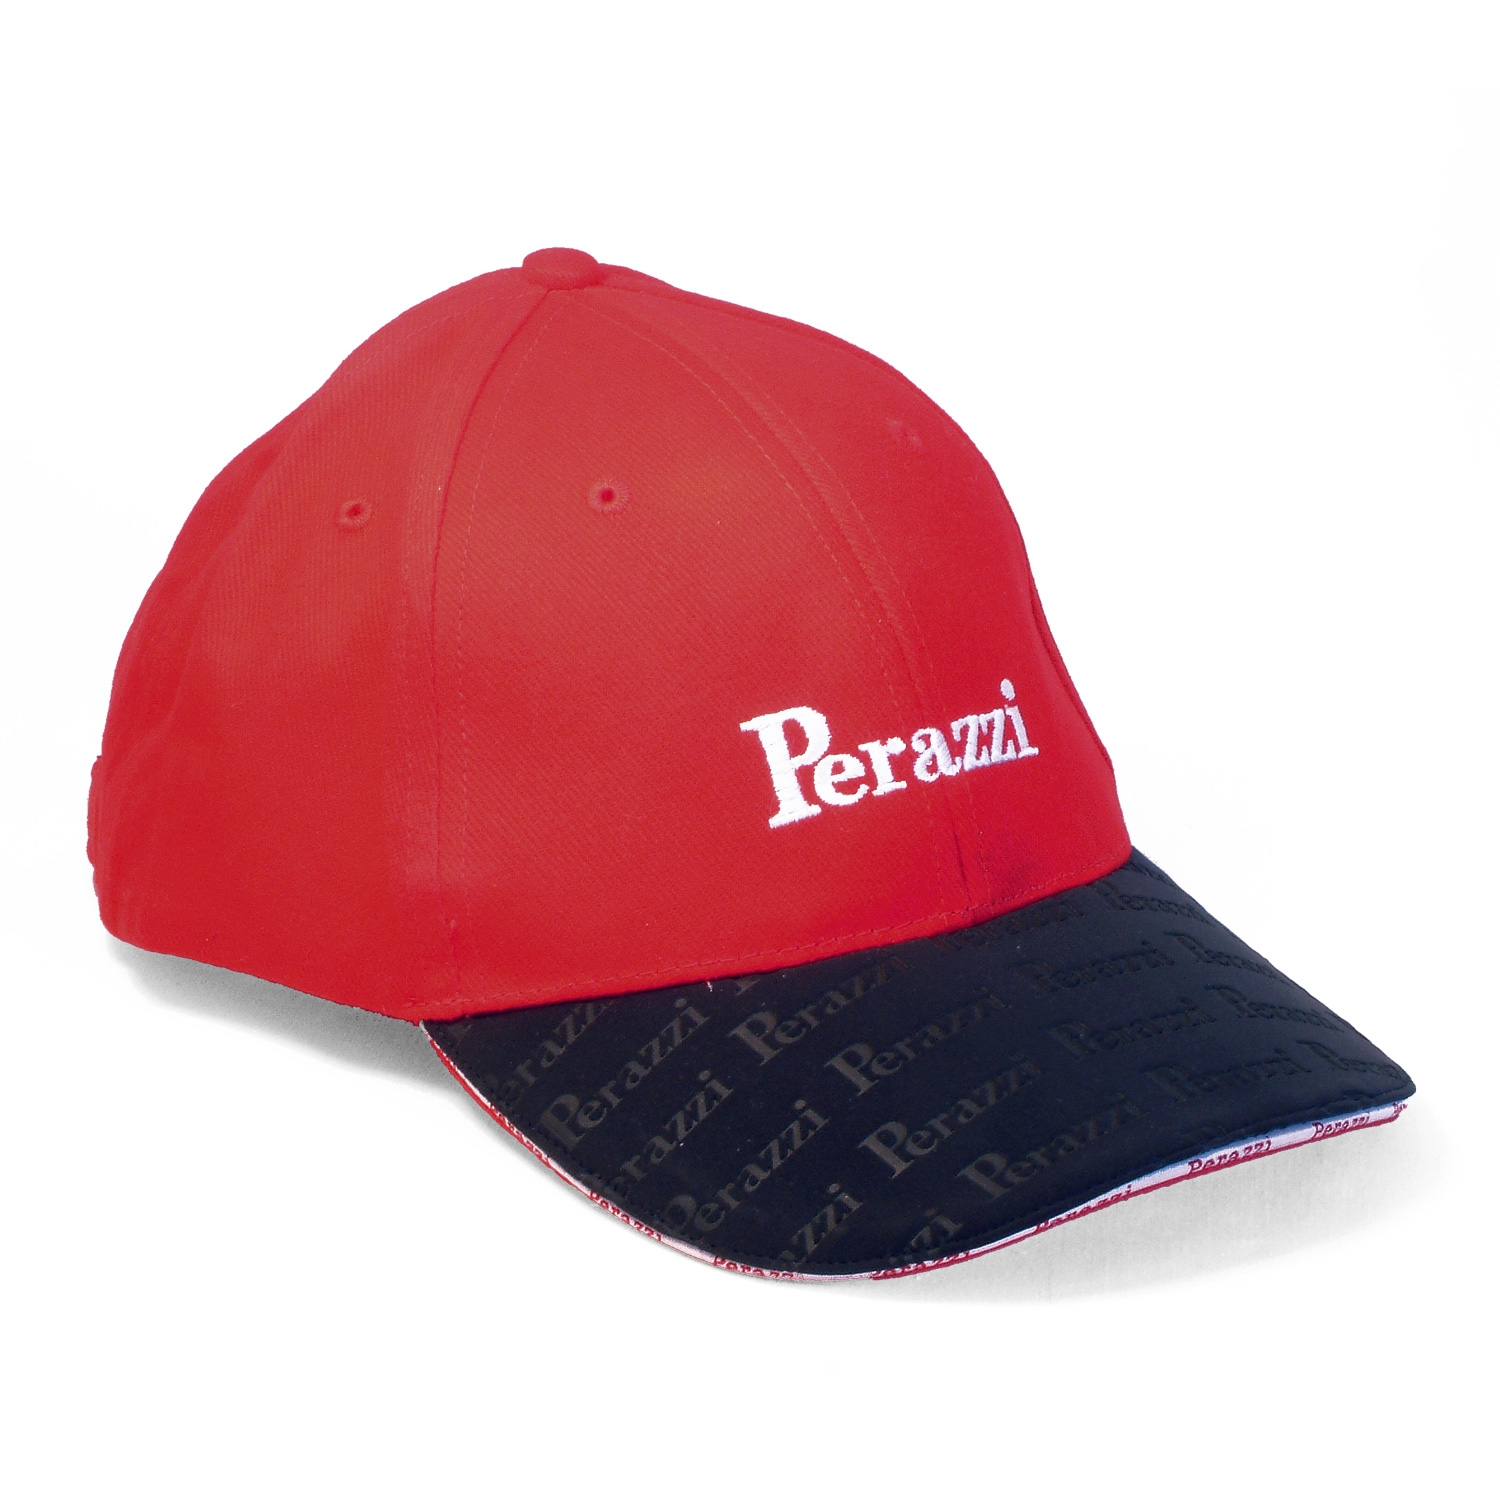 Awe Inspiring Perazzi Soft Touch Peak Cap Red Red Black Pabps2019 Chair Design Images Pabps2019Com